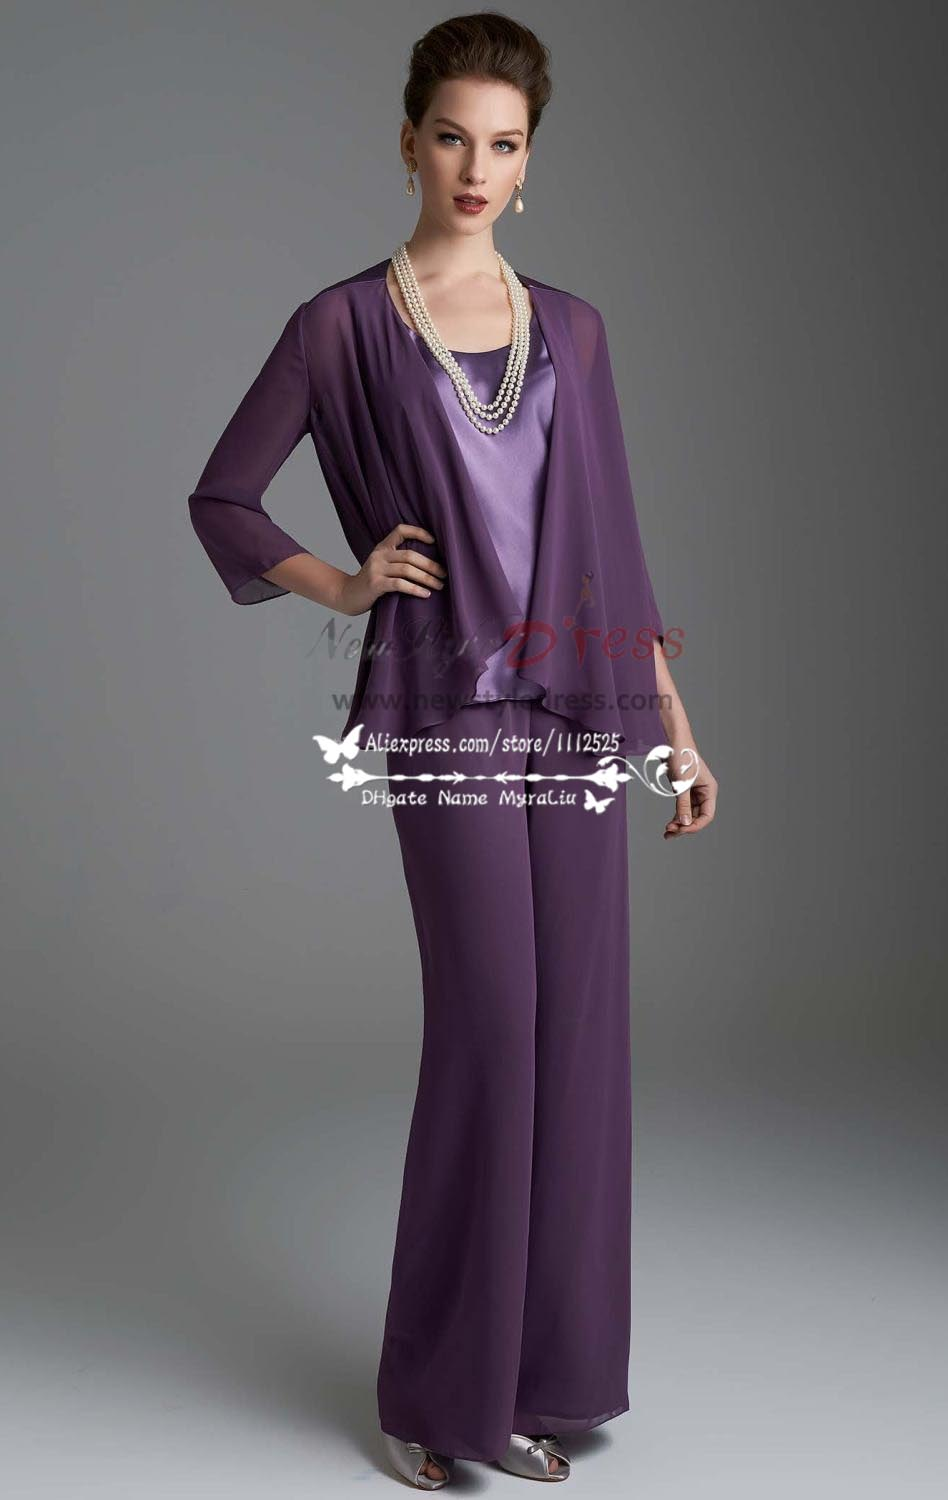 Wonderful Women For WeddingsBuy Cheap Formal Pant Suits For Women For Weddings